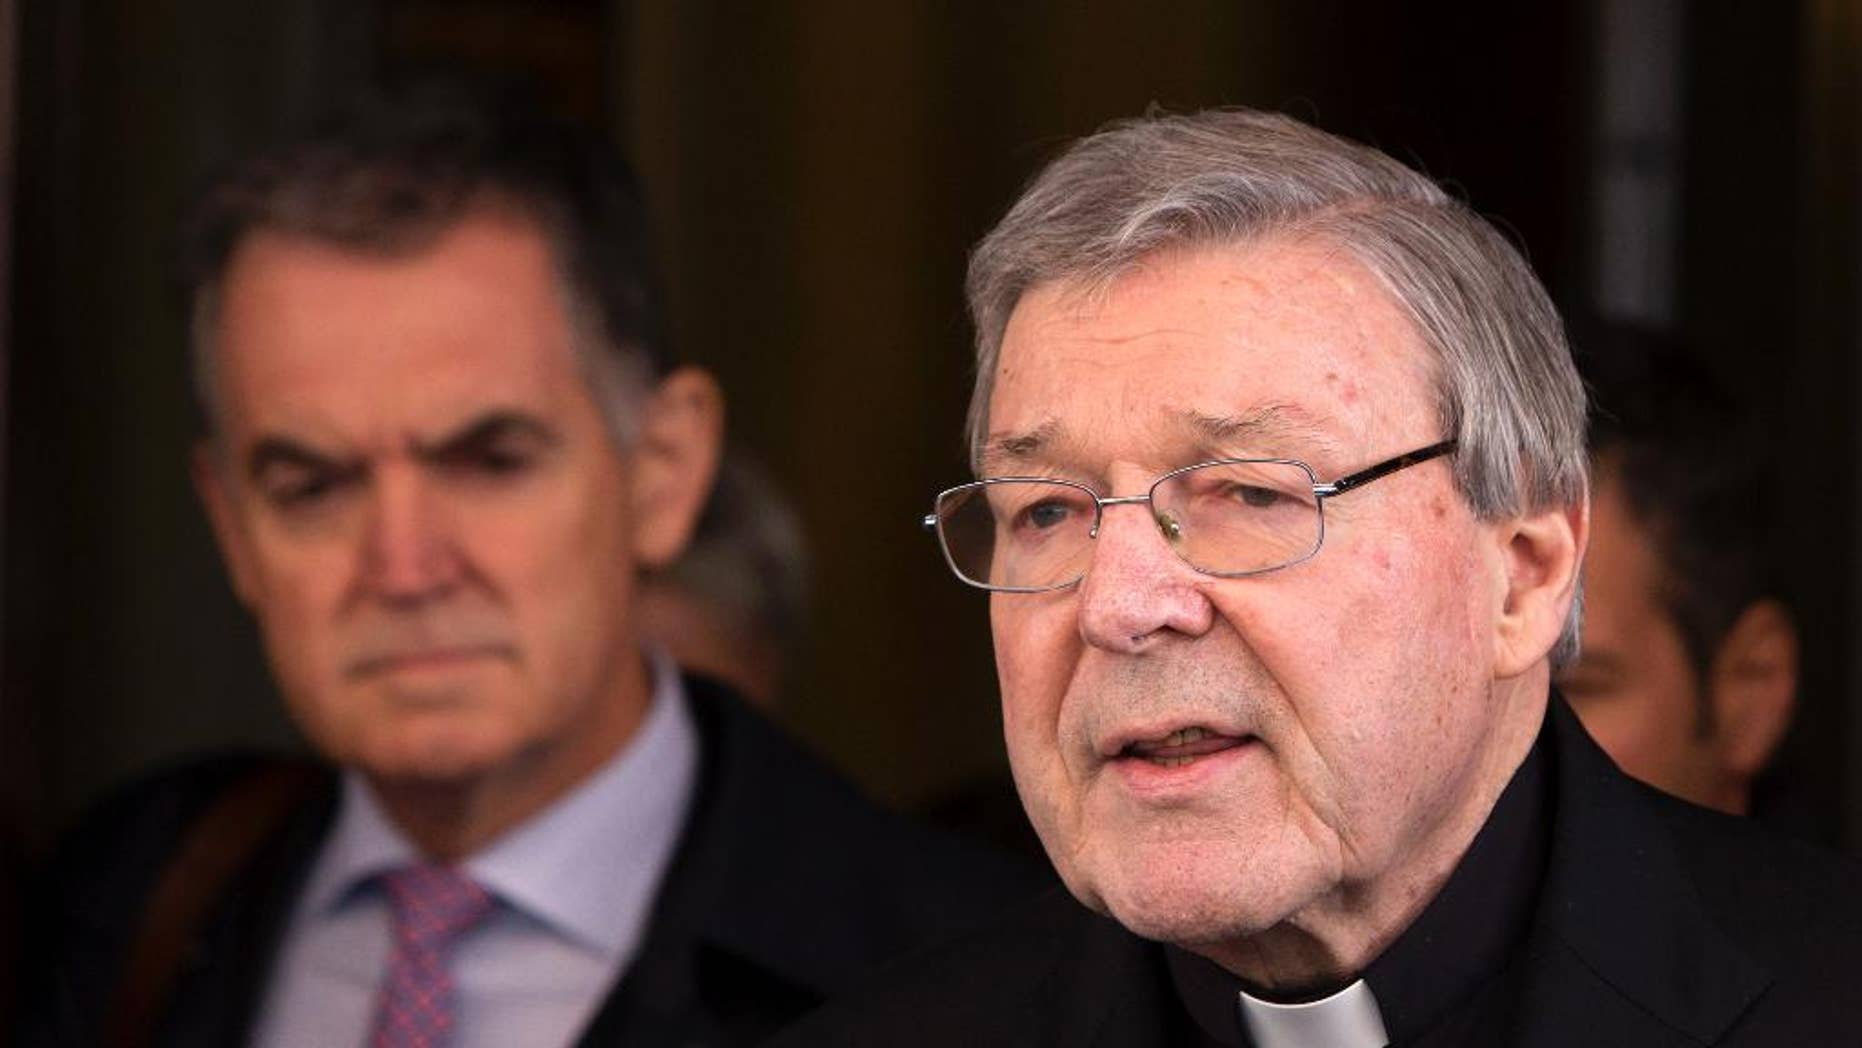 FILE - In this March 3, 2016 file photo, Australian cardinal George Pell reads a statement to reporters as he leaves the Quirinale hotel after meeting members of the Australian group of relatives and victims of priestly sex abuses, in Rome, Italy. Australian police flew to Rome to interview a top Vatican cardinal about allegations of sexual assault dating back decades, officials said Wednesday, Oct. 26, 2016. Cardinal George Pell, Pope Francis' top financial adviser, has long been dogged by allegations of mishandling cases of clergy abuse when he was archbishop of Melbourne and later Sydney.(AP Photo/Riccardo De Luca, File)